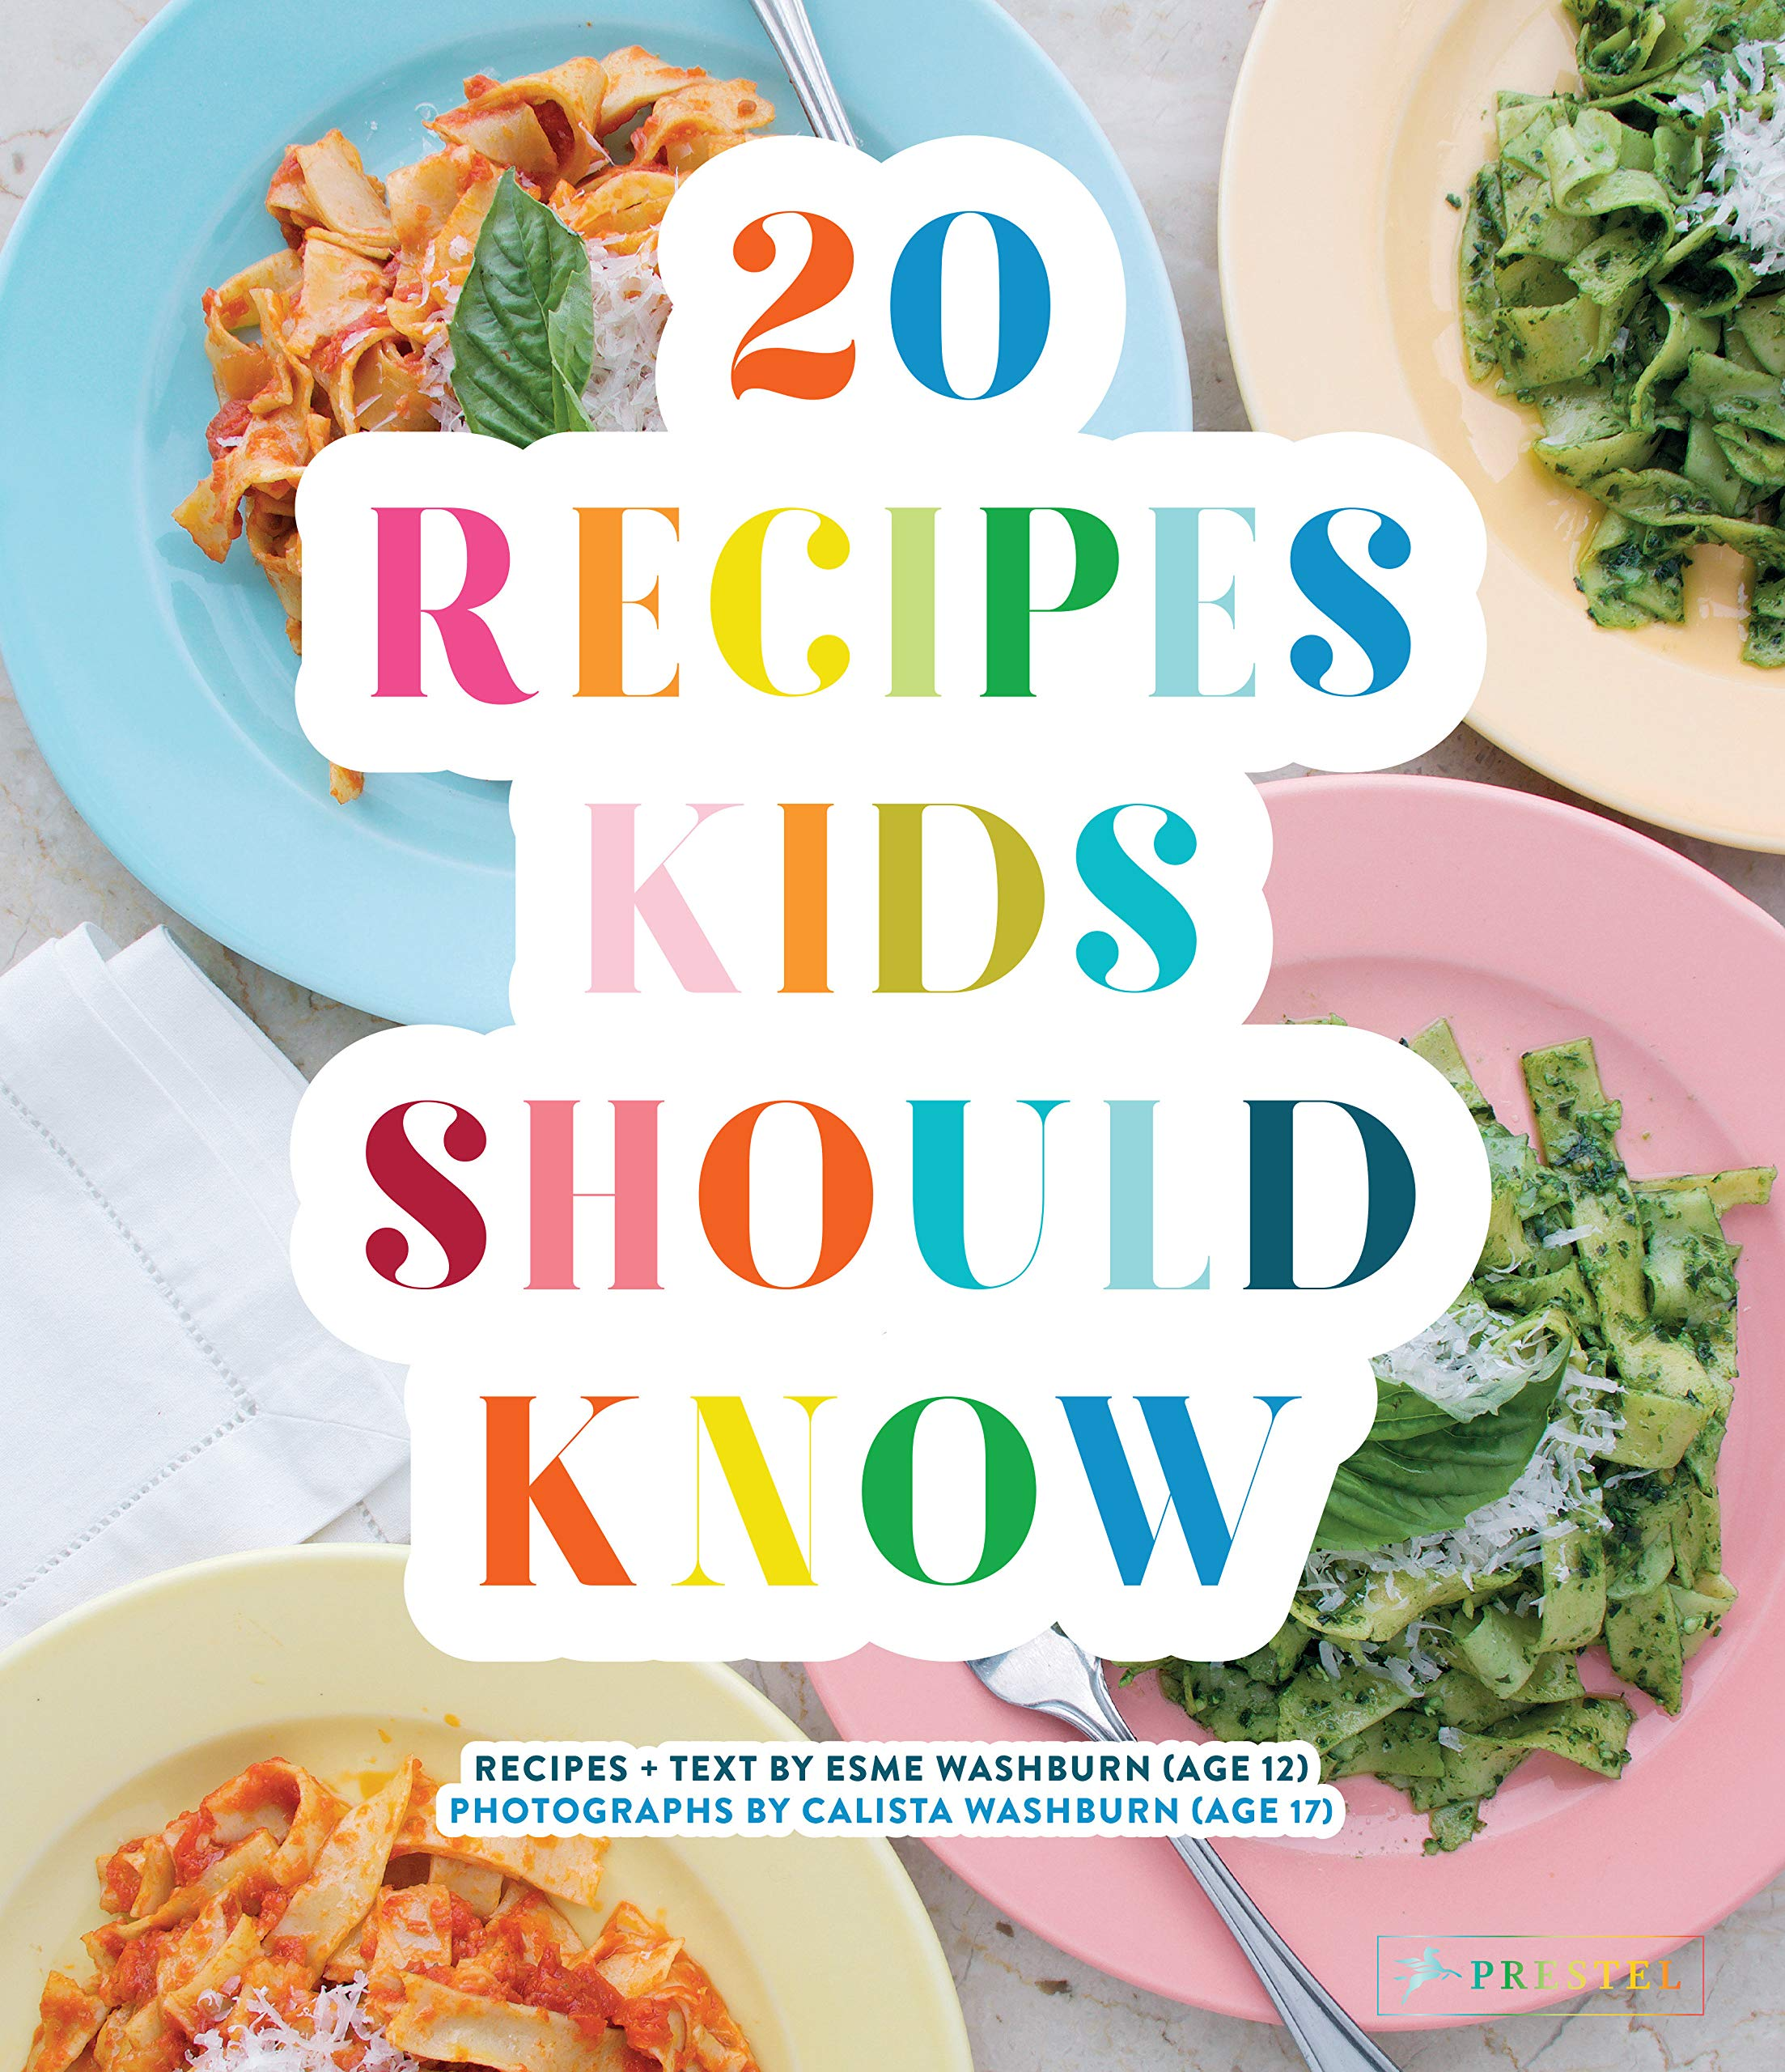 Amazon.com 20 Recipes Kids Should Know (9783791385075